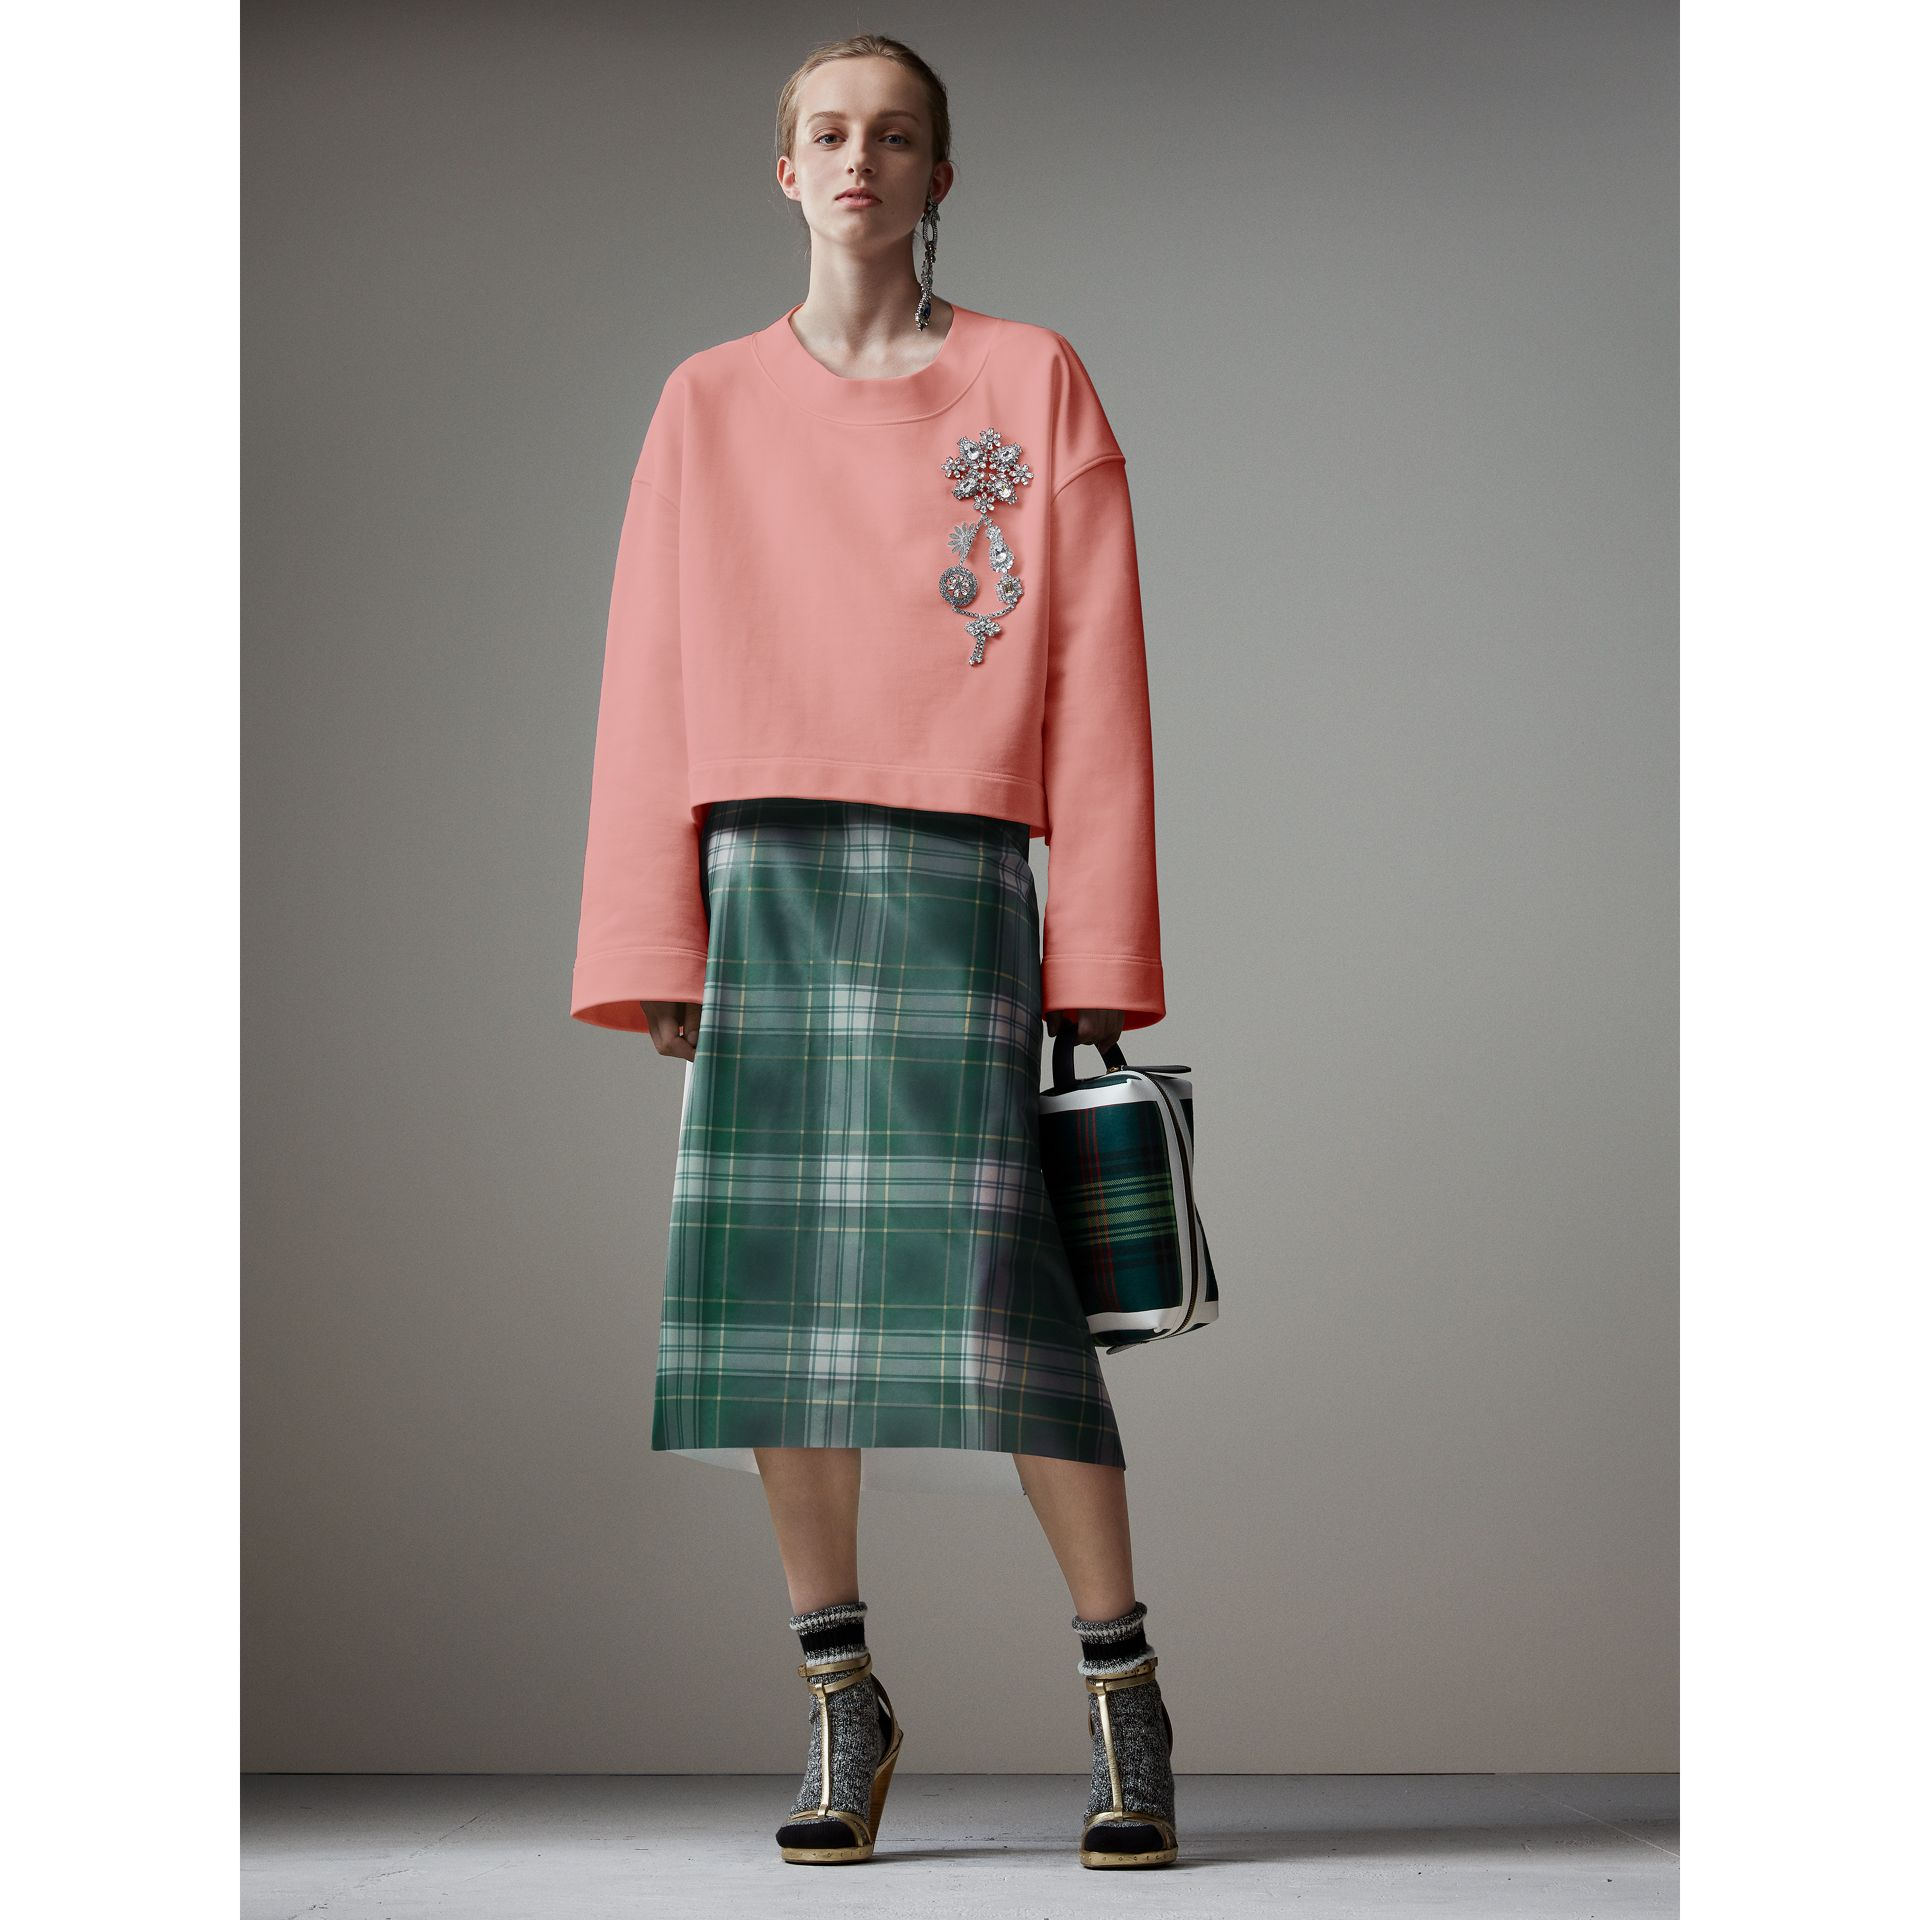 Cropped Sweatshirt with Crystal Brooch in Vintage Rose - Women | Burberry - gallery image 1